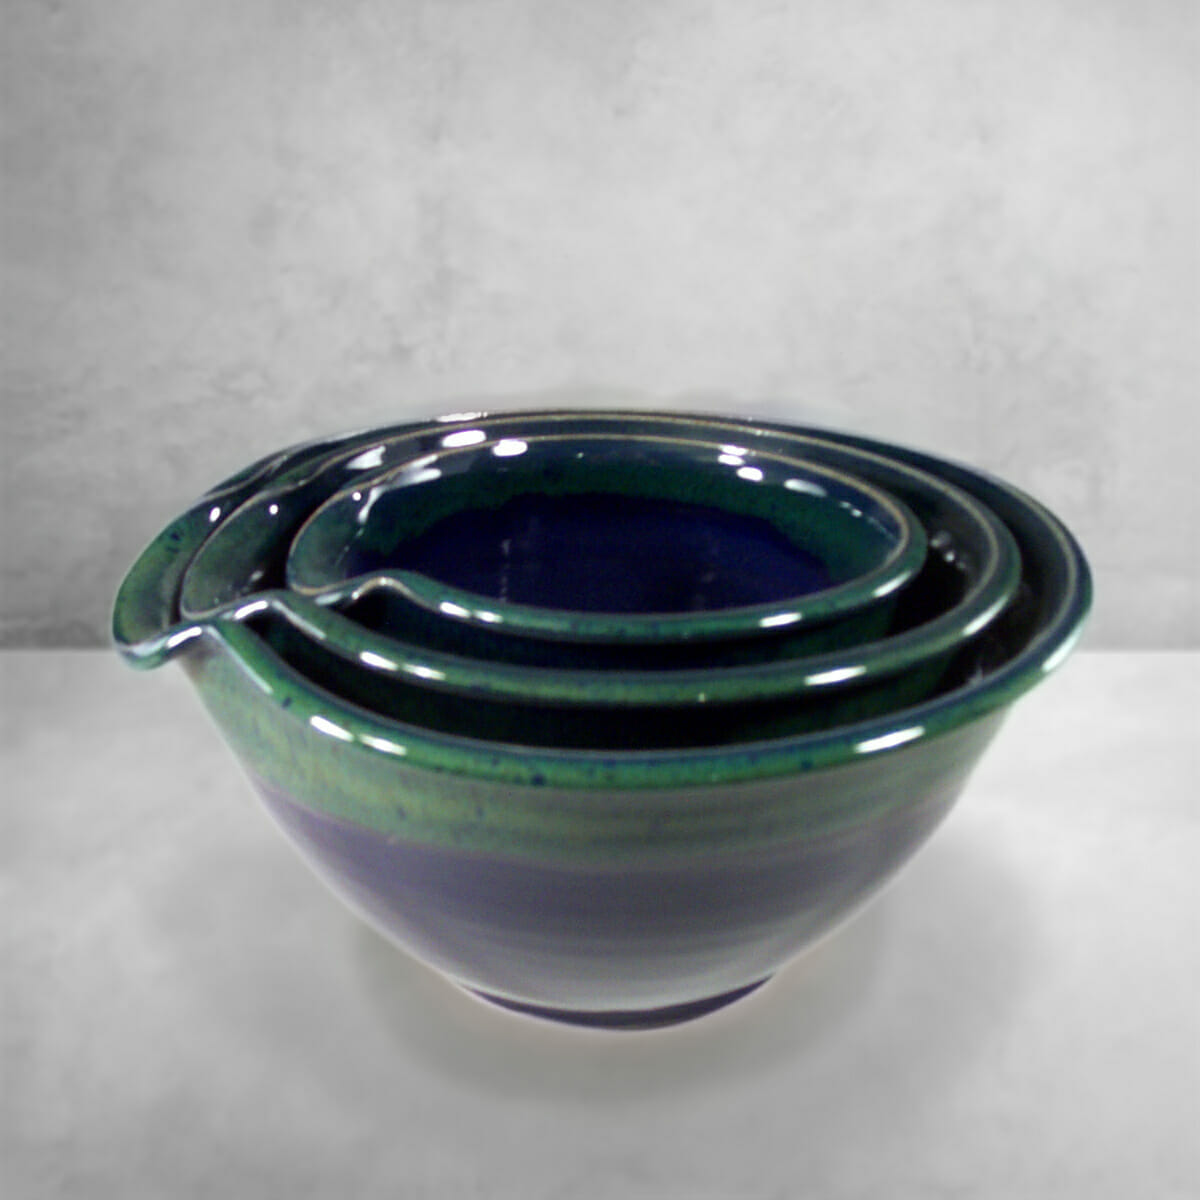 Mixing Bowl 3-pc. Set Smooth Design in Dark Blue and Green Glaze.